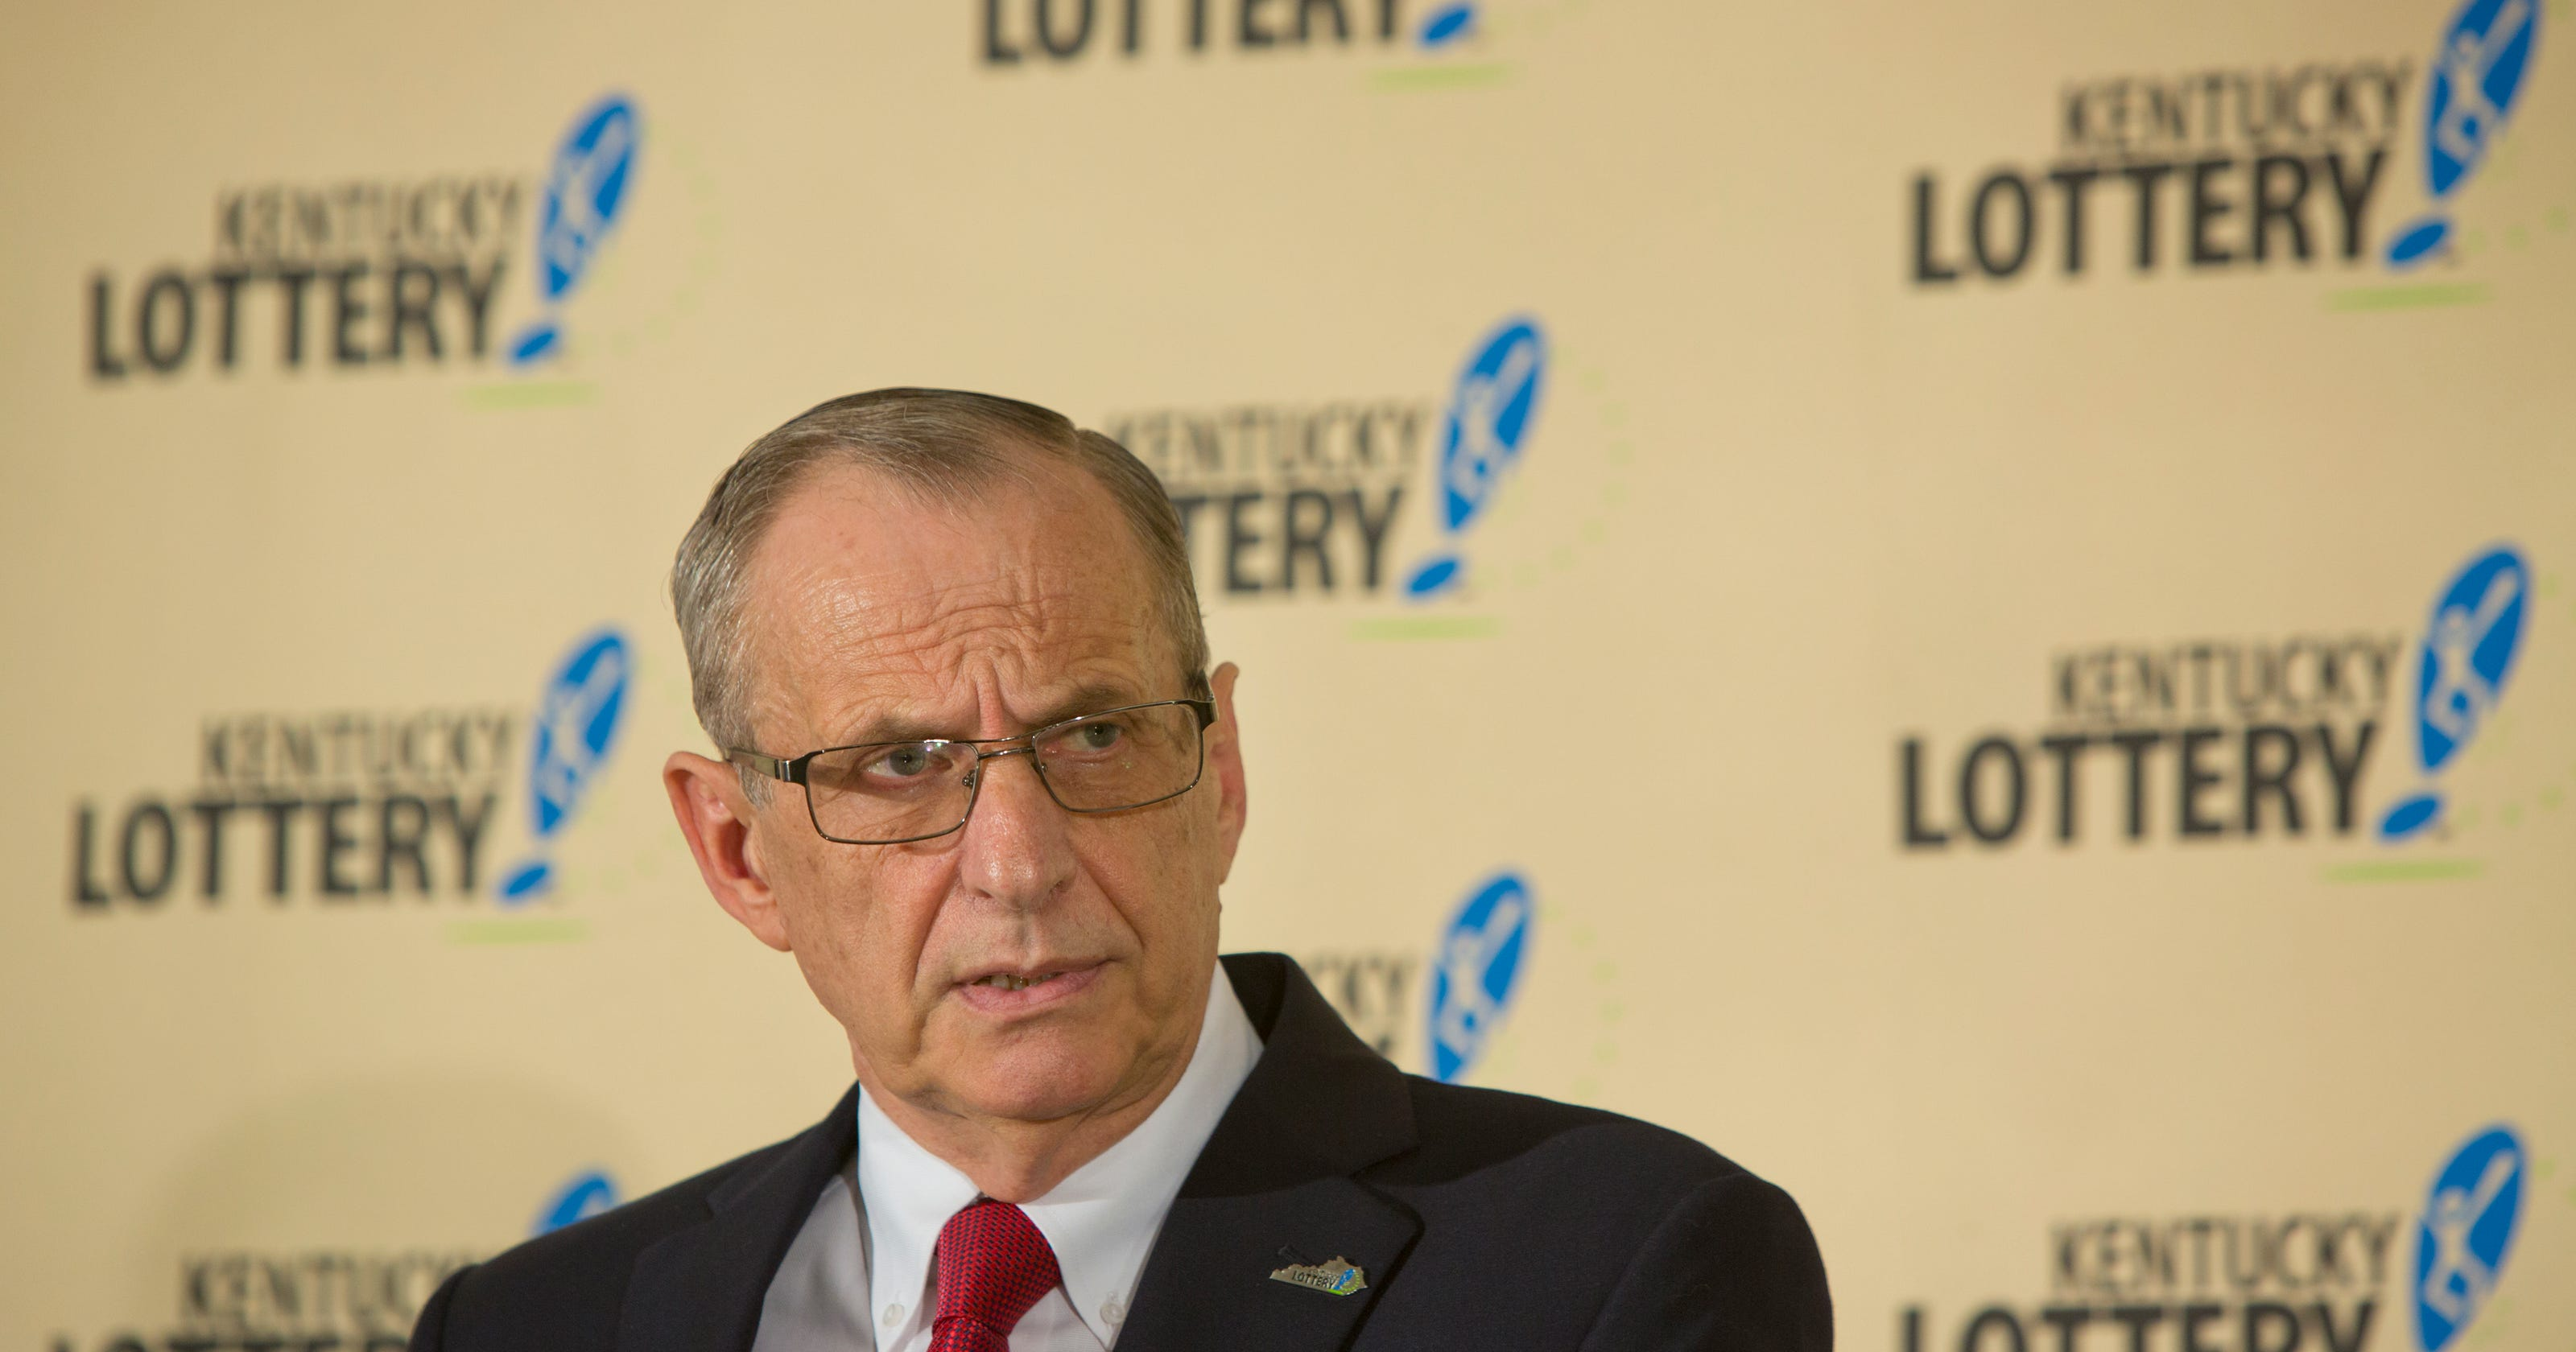 New Kentucky Lottery CEO wants to increase ticket sales